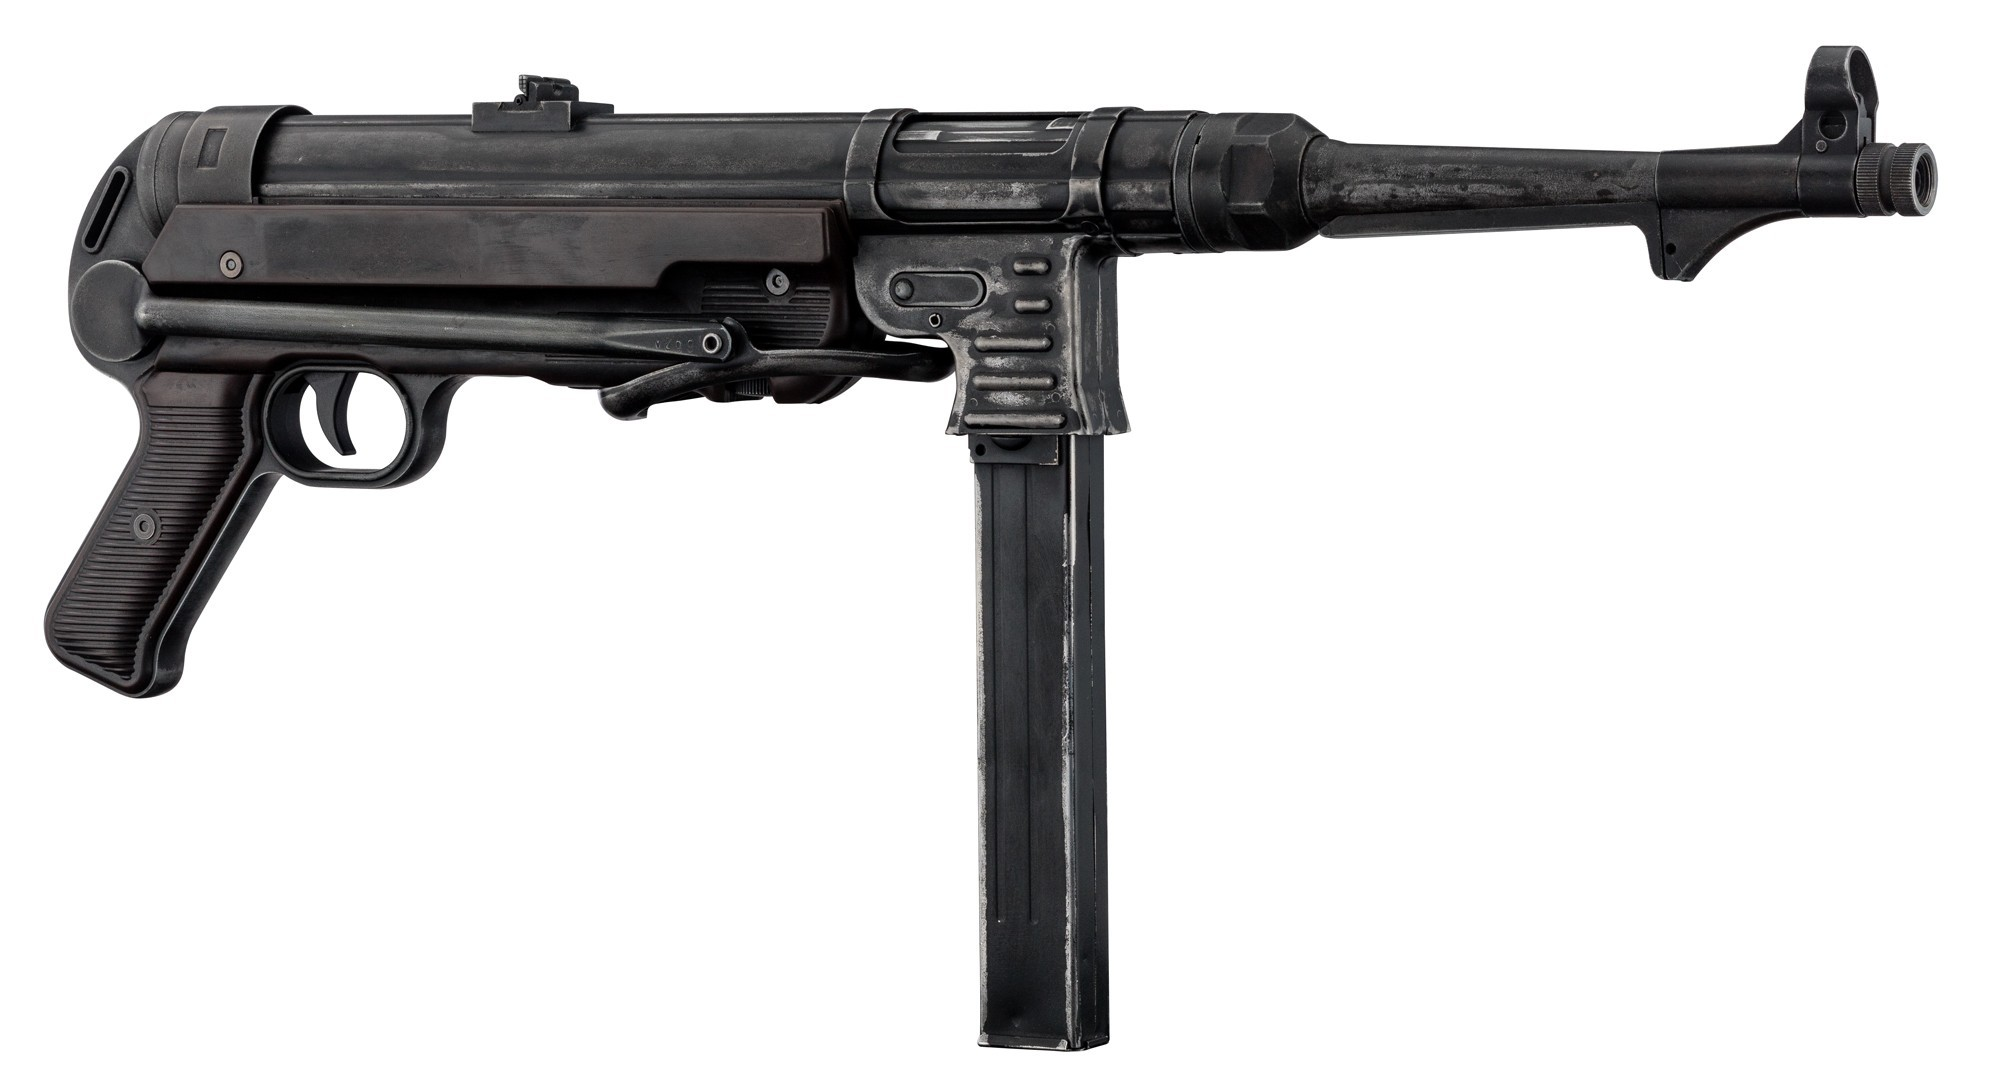 Photo Réplique AEG MP-40 Overlord WW2 Série